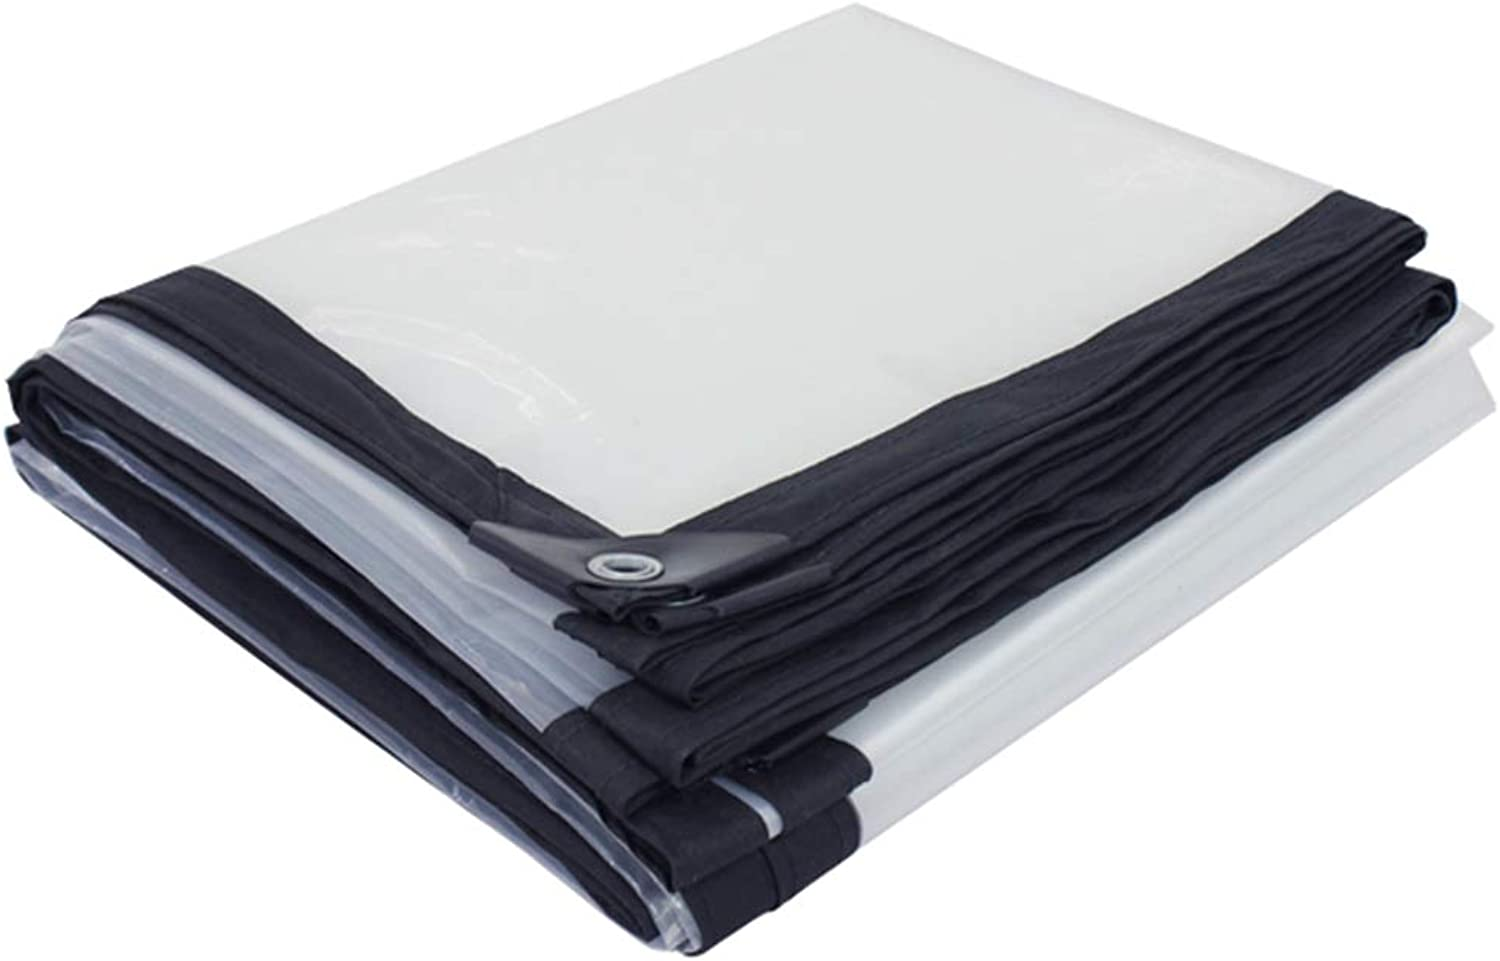 Glass Clear Tarpaulin Ground Sheet Cover Heavy Duty Balcony Plant Awning Rainproof Tarp Outdoor PE Plastic with Grommets and Reinforced Edges